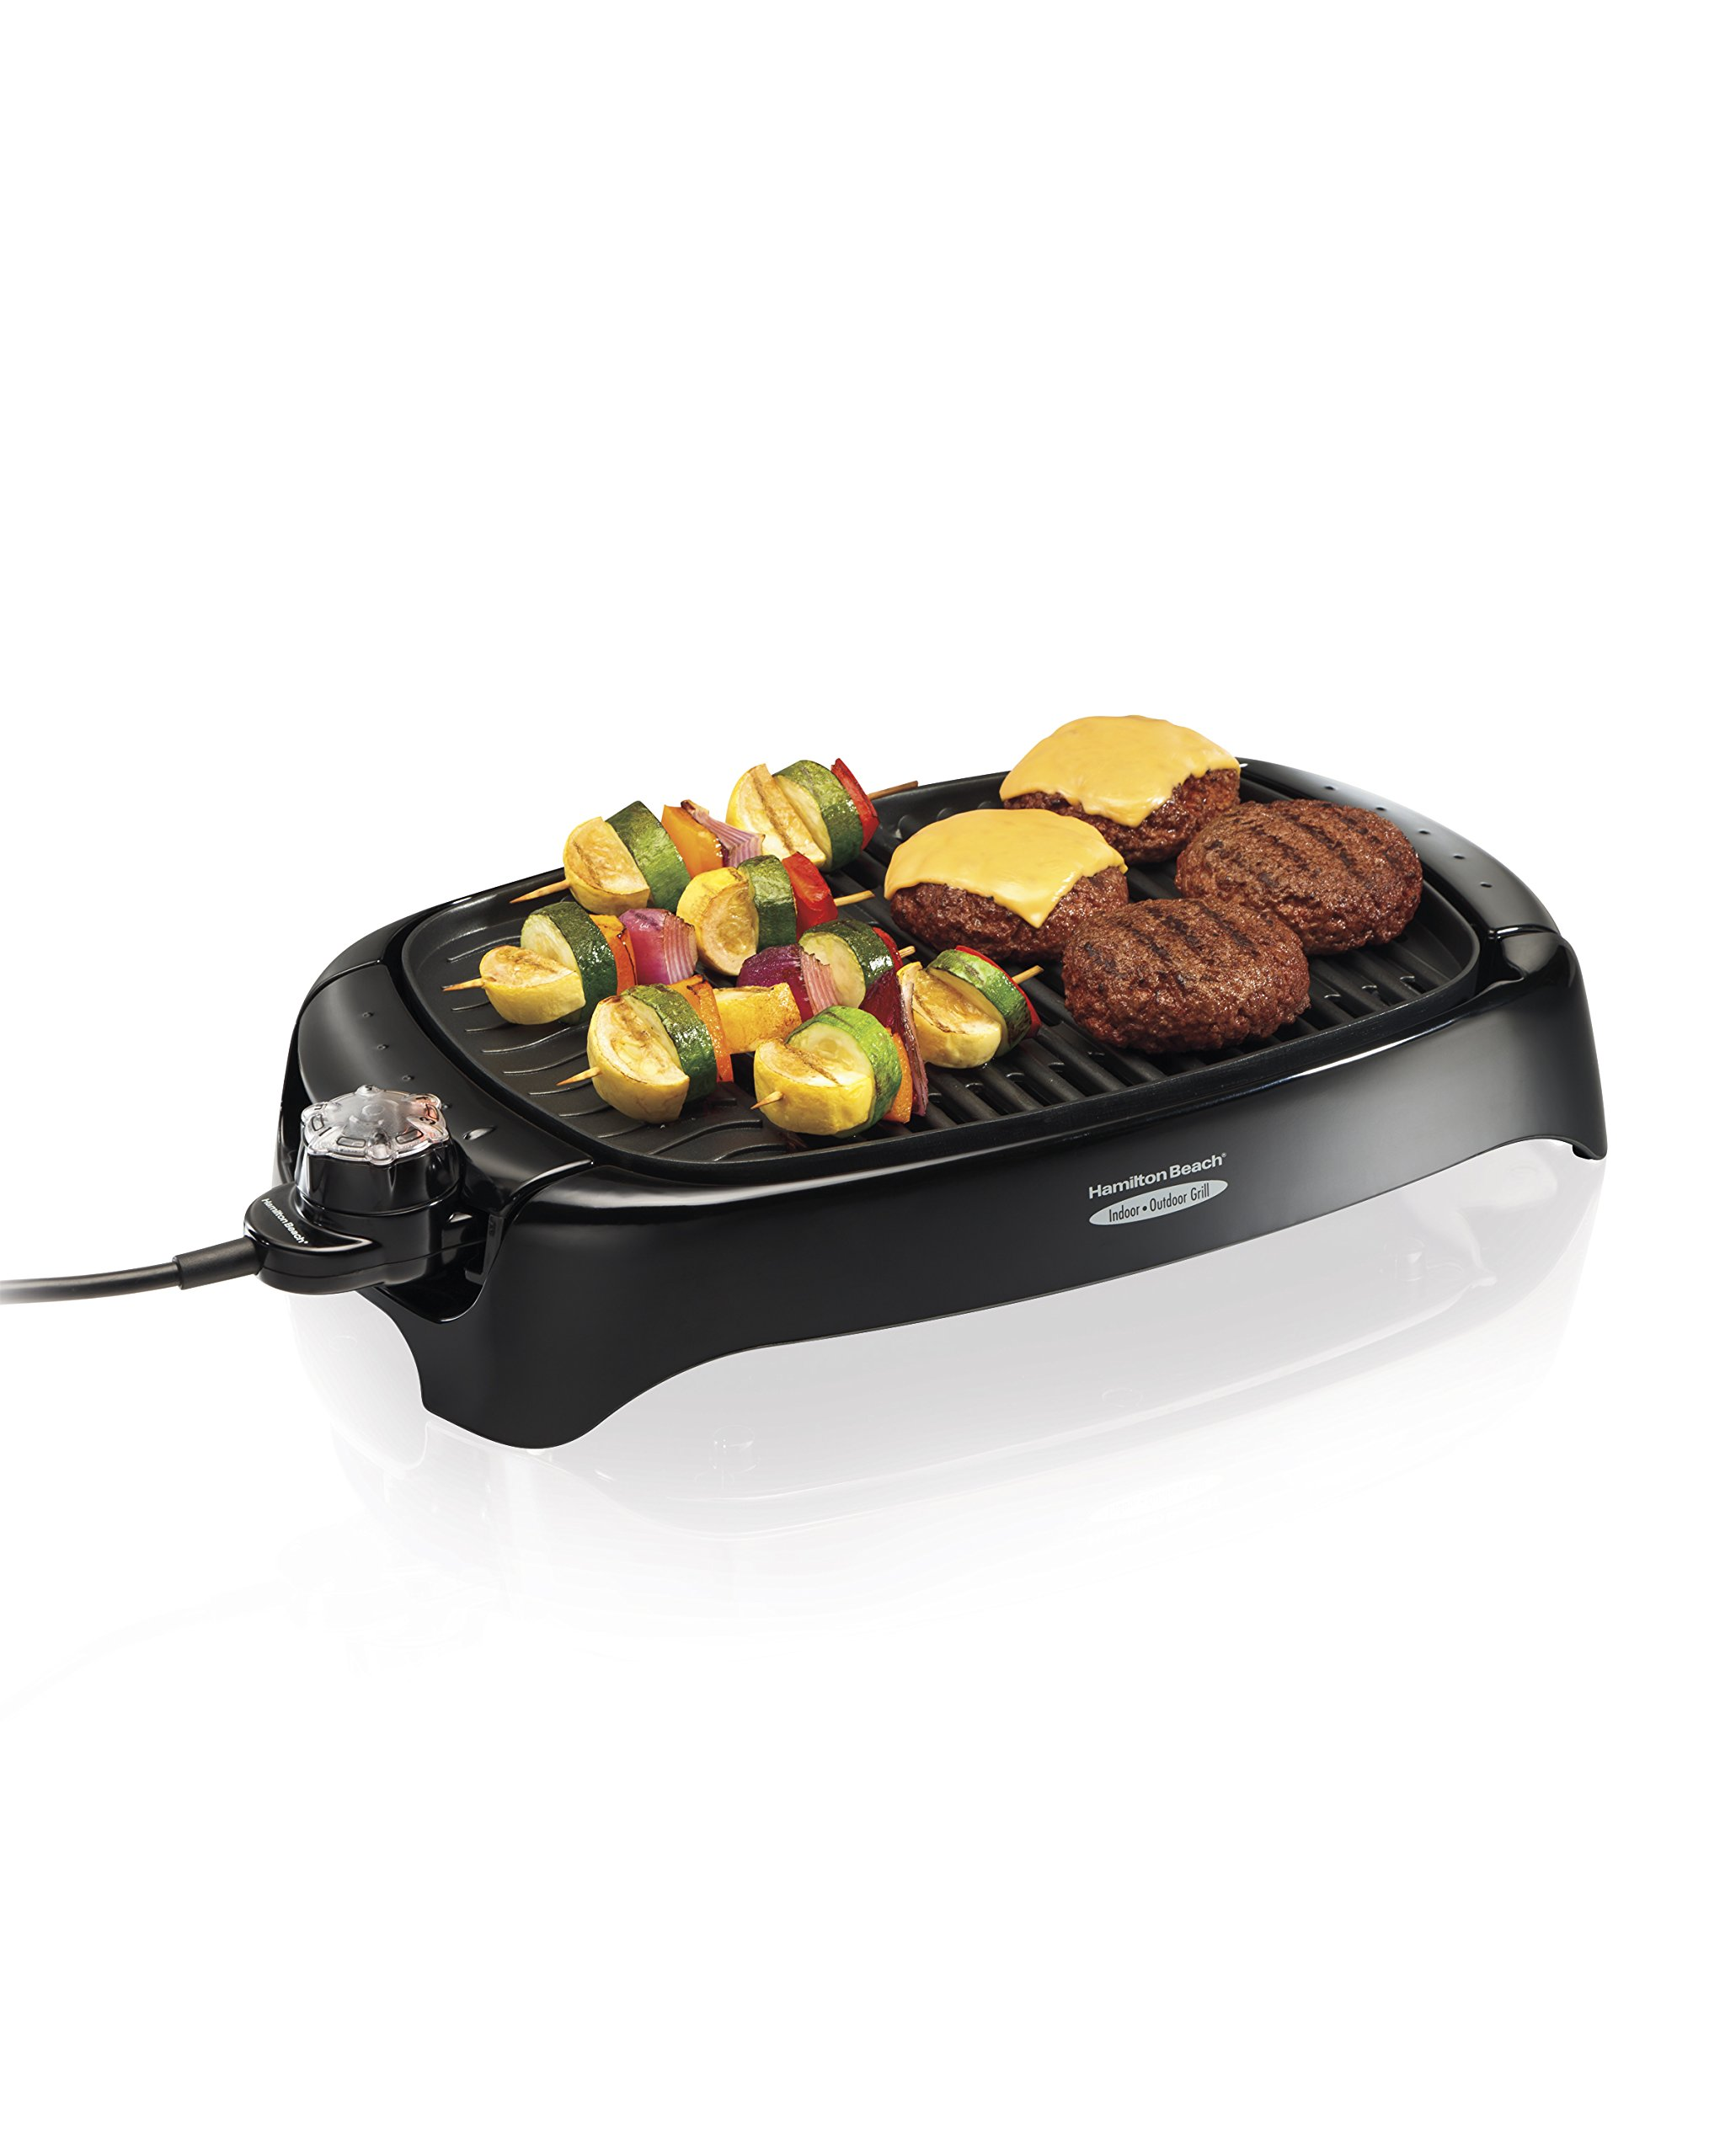 Hamilton Beach 8-Serving Electric Indoor/Outdoor Smokeless Grill, Dishwasher Safe, Adjustable Temperature Control (31605N), Black by Hamilton Beach